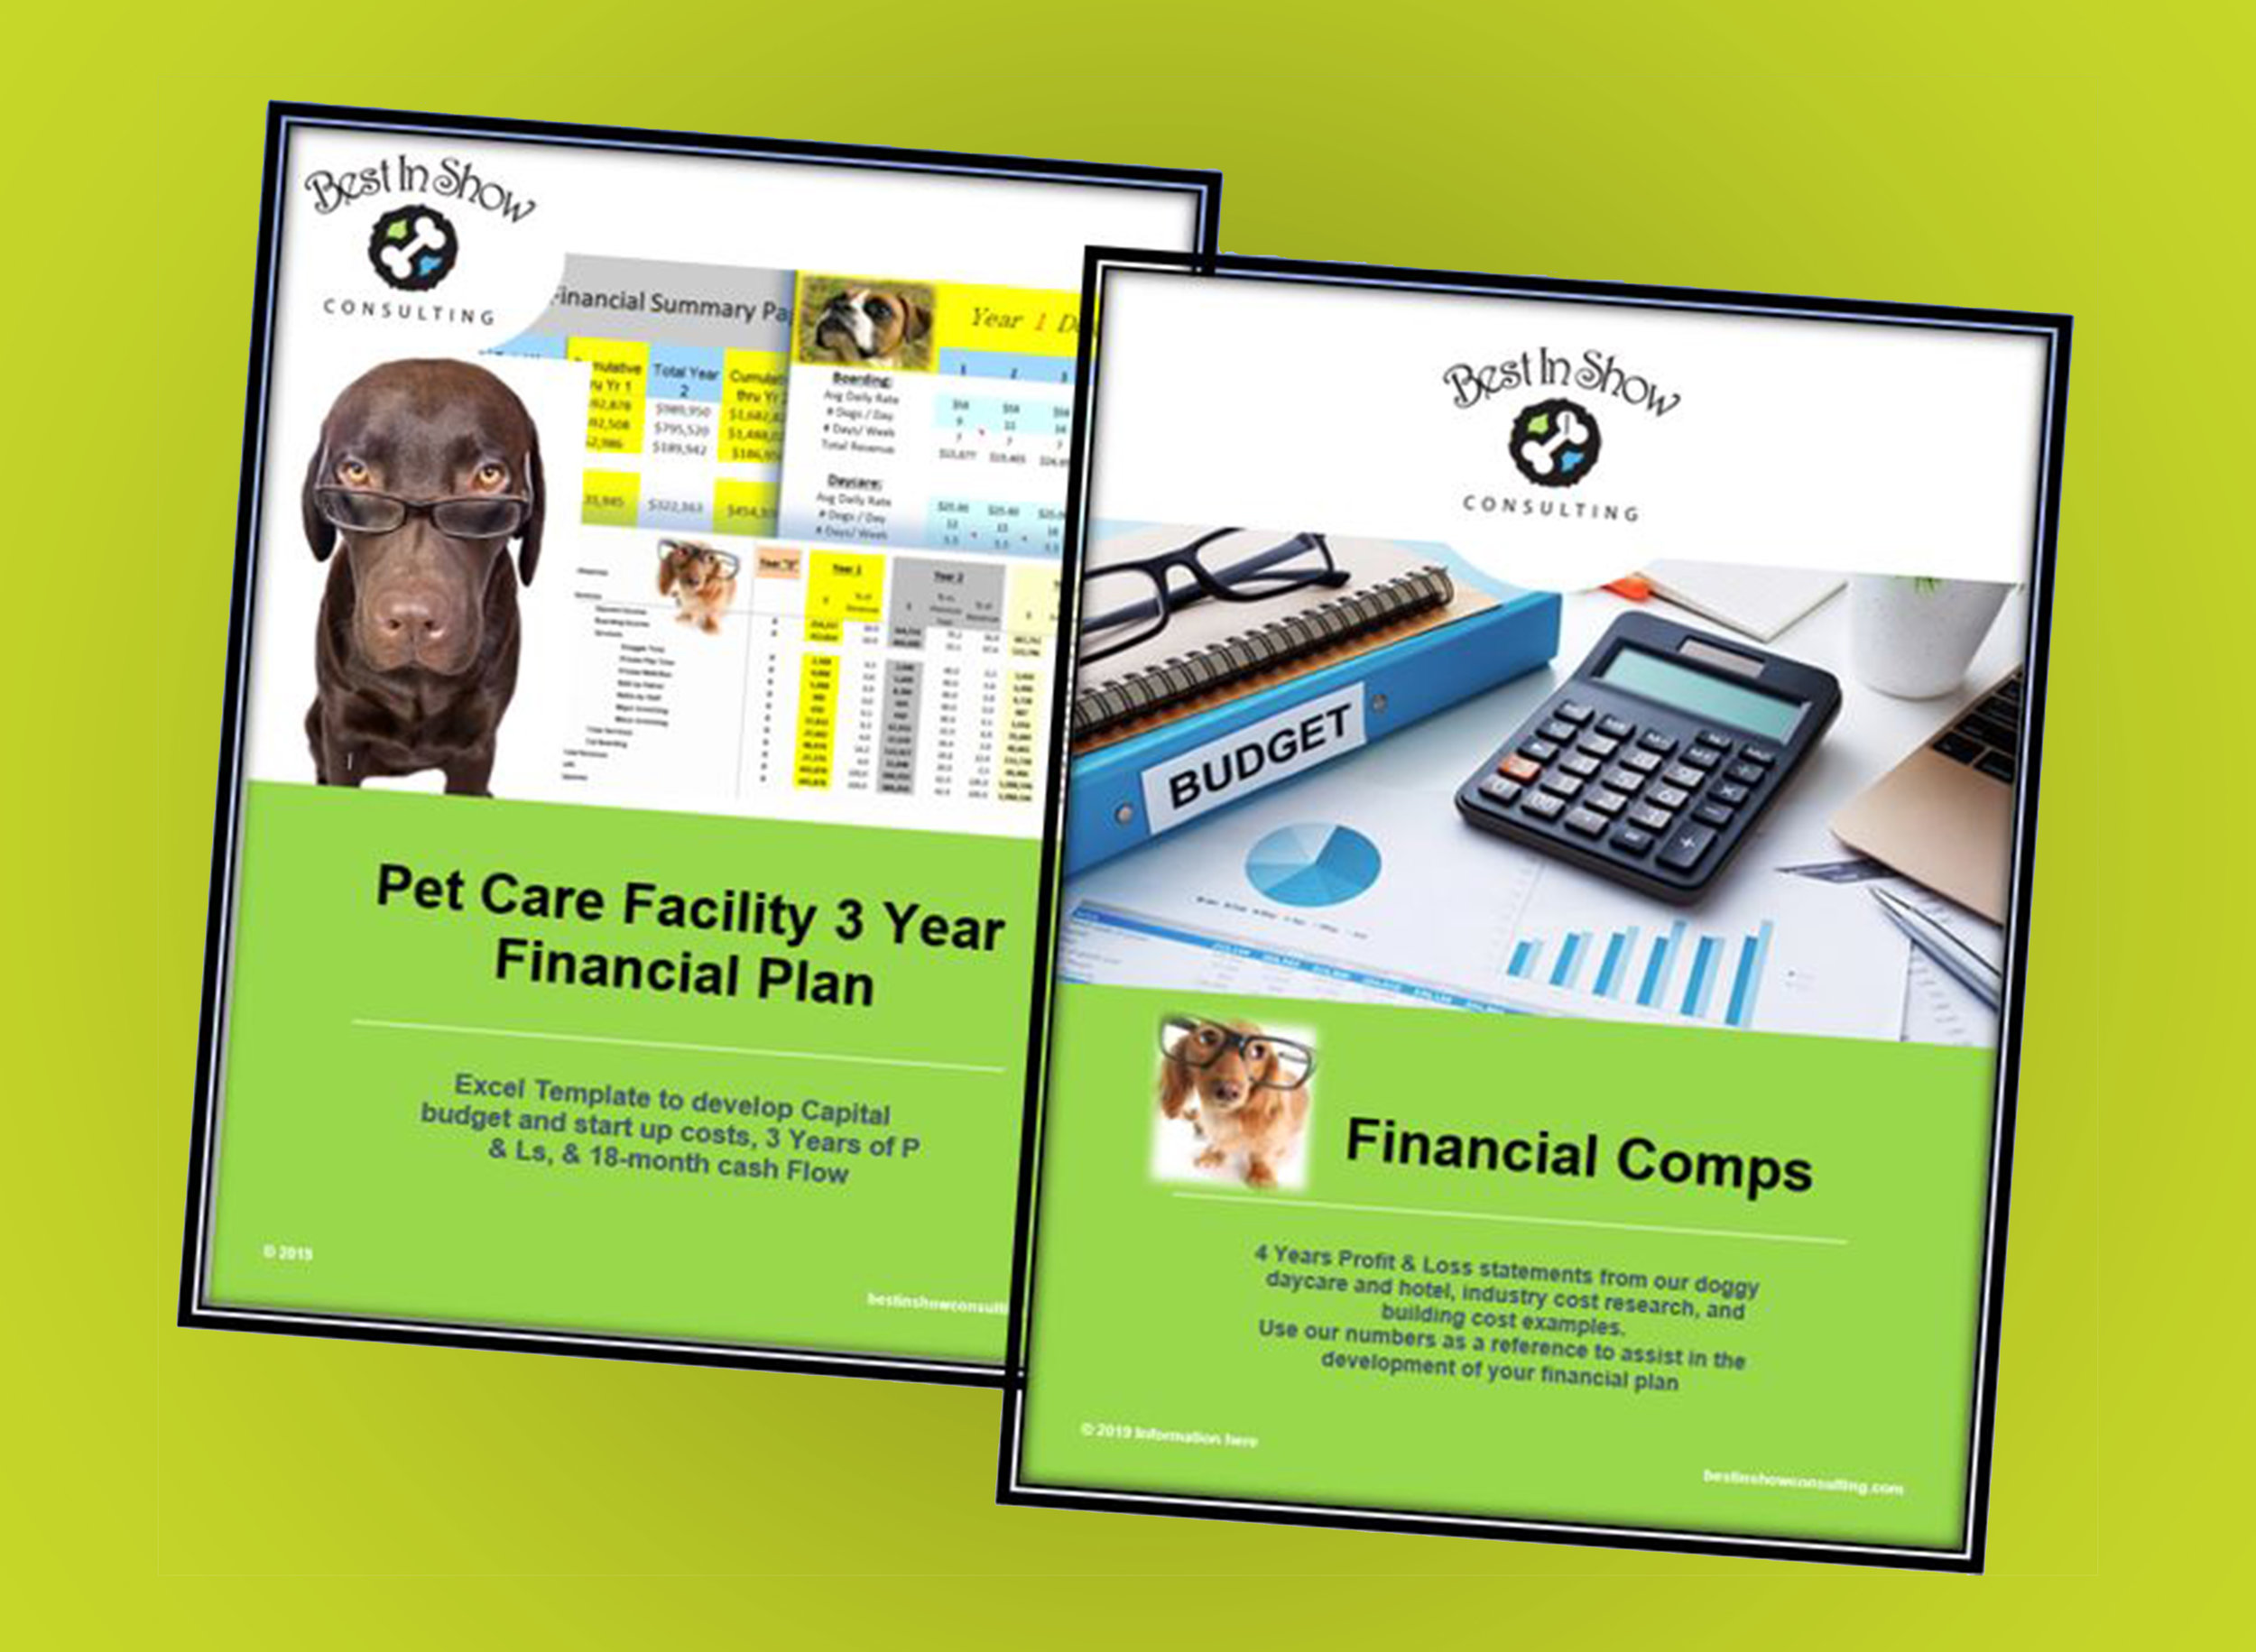 3 Year financial plan + Comps Products